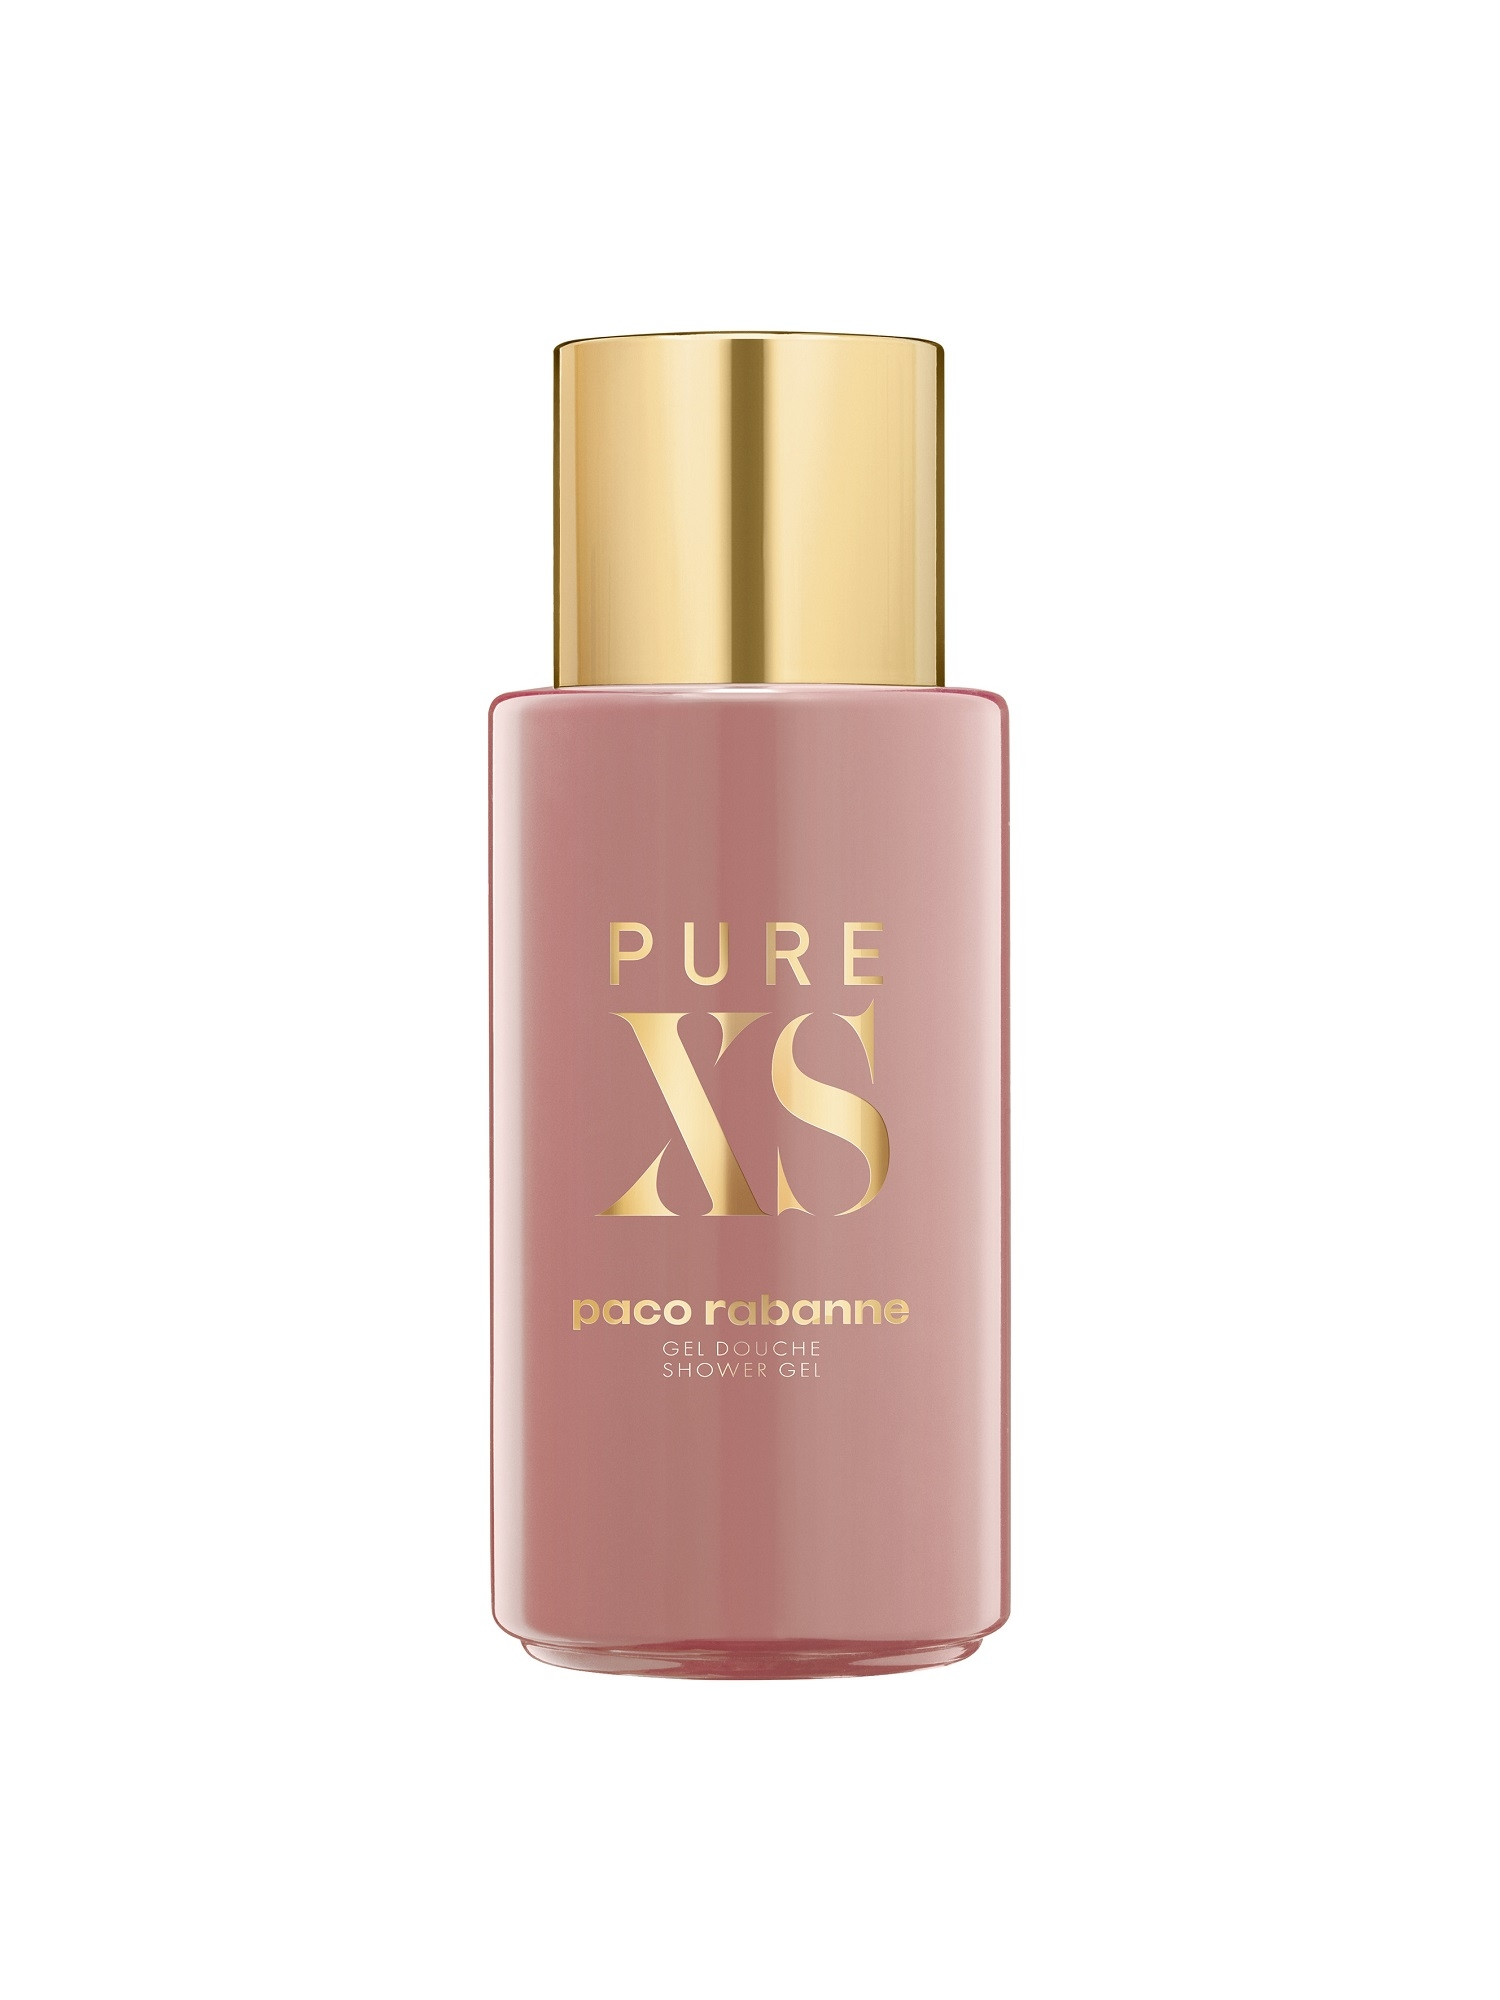 Paco Rabanne Pure XS For Her Shower Gel 5.3oz (150ml)